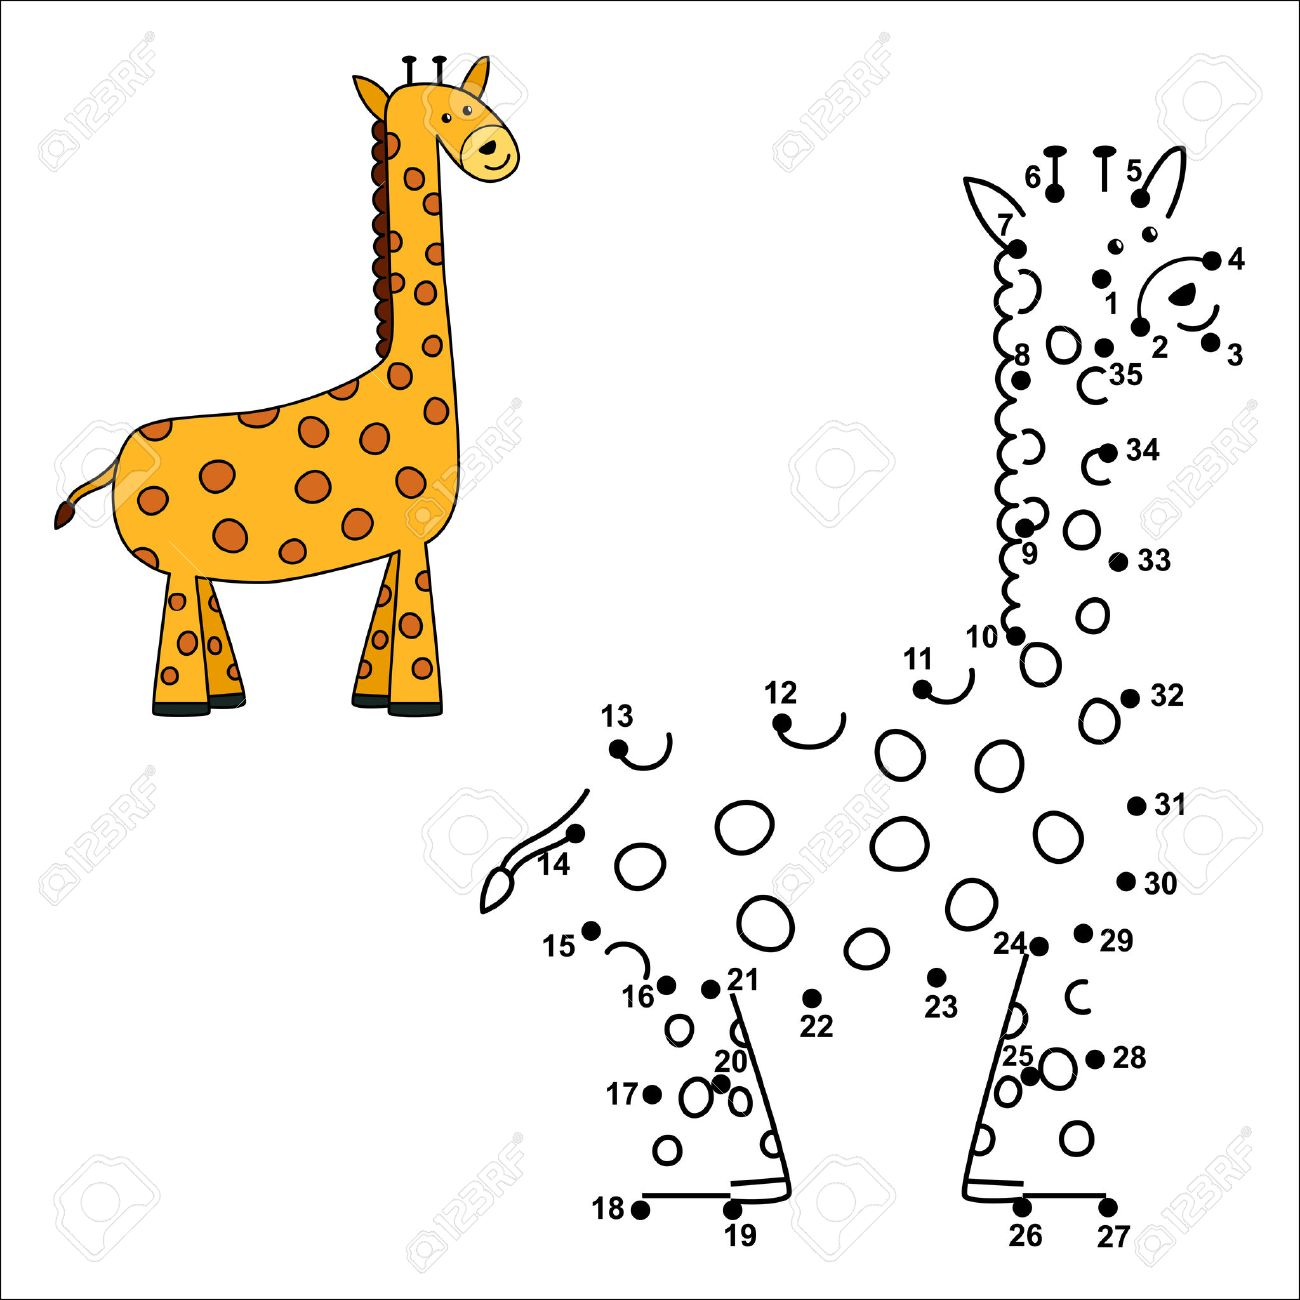 connect the dots to draw the cute giraffe and color it